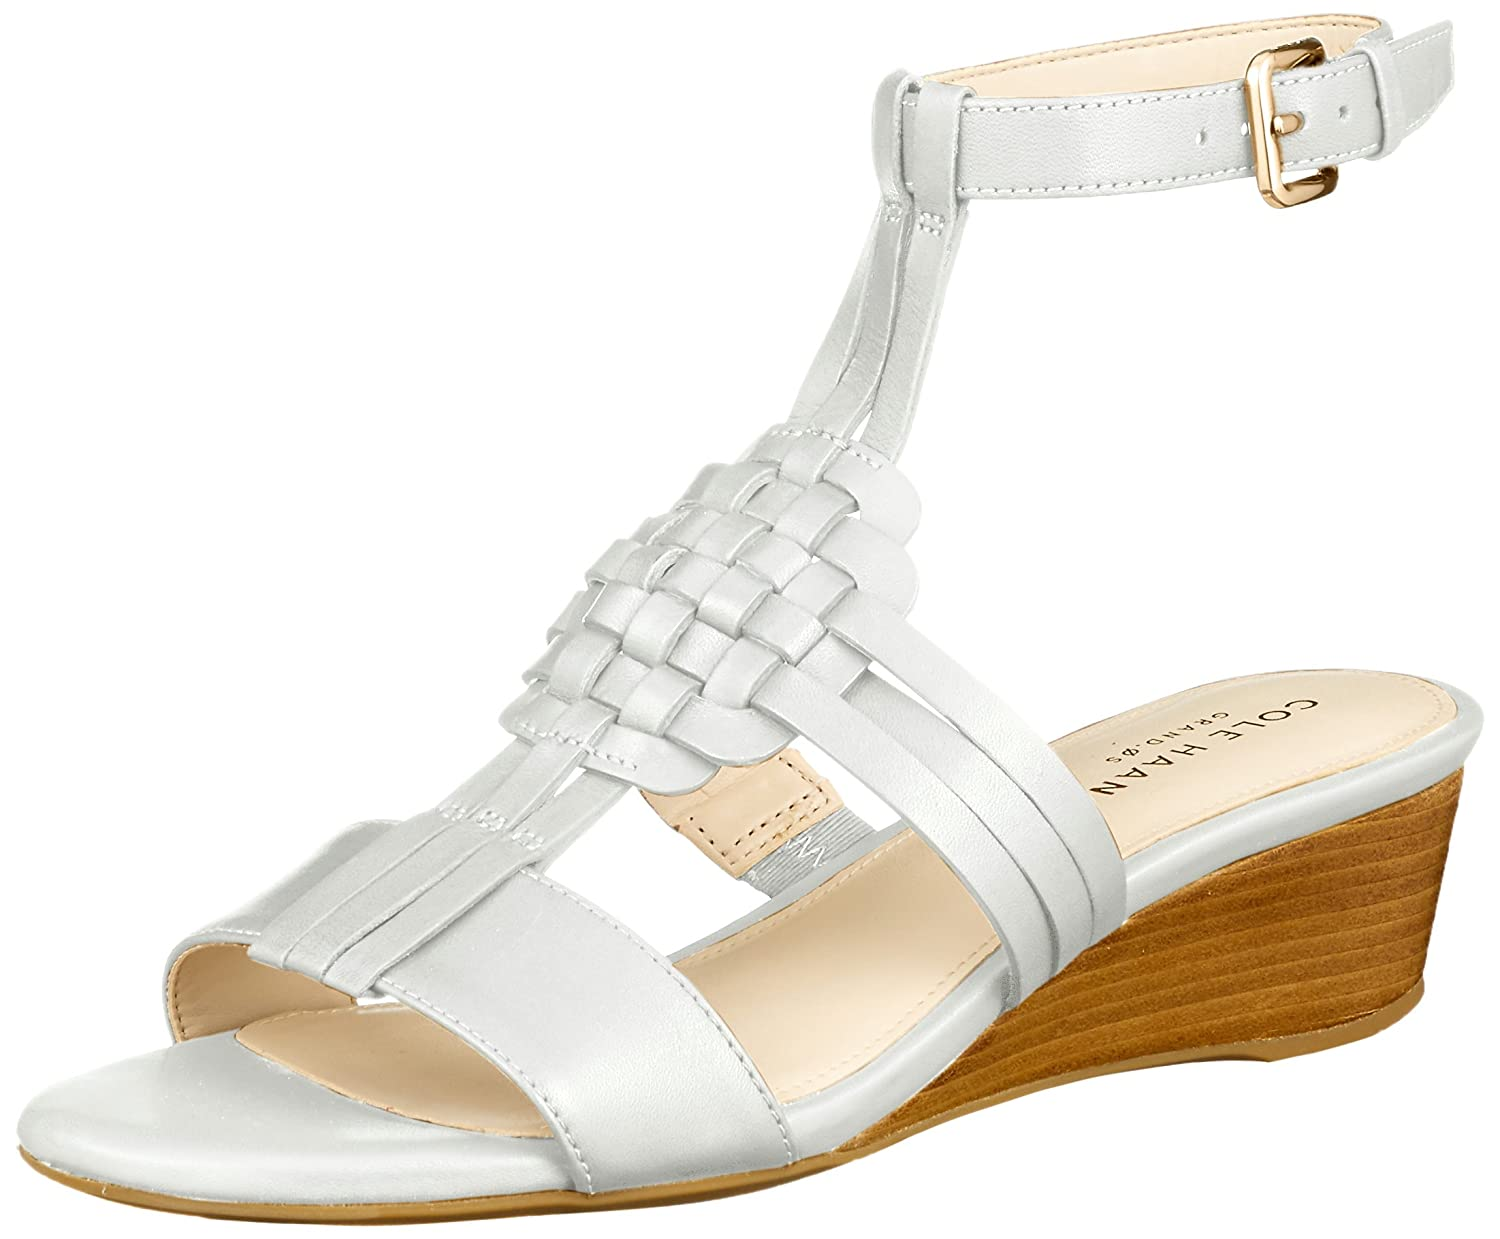 Cole Haan Womens Findra Woven Slide Wedge Sandal B07C2V3KYF 6 B(M) US|White